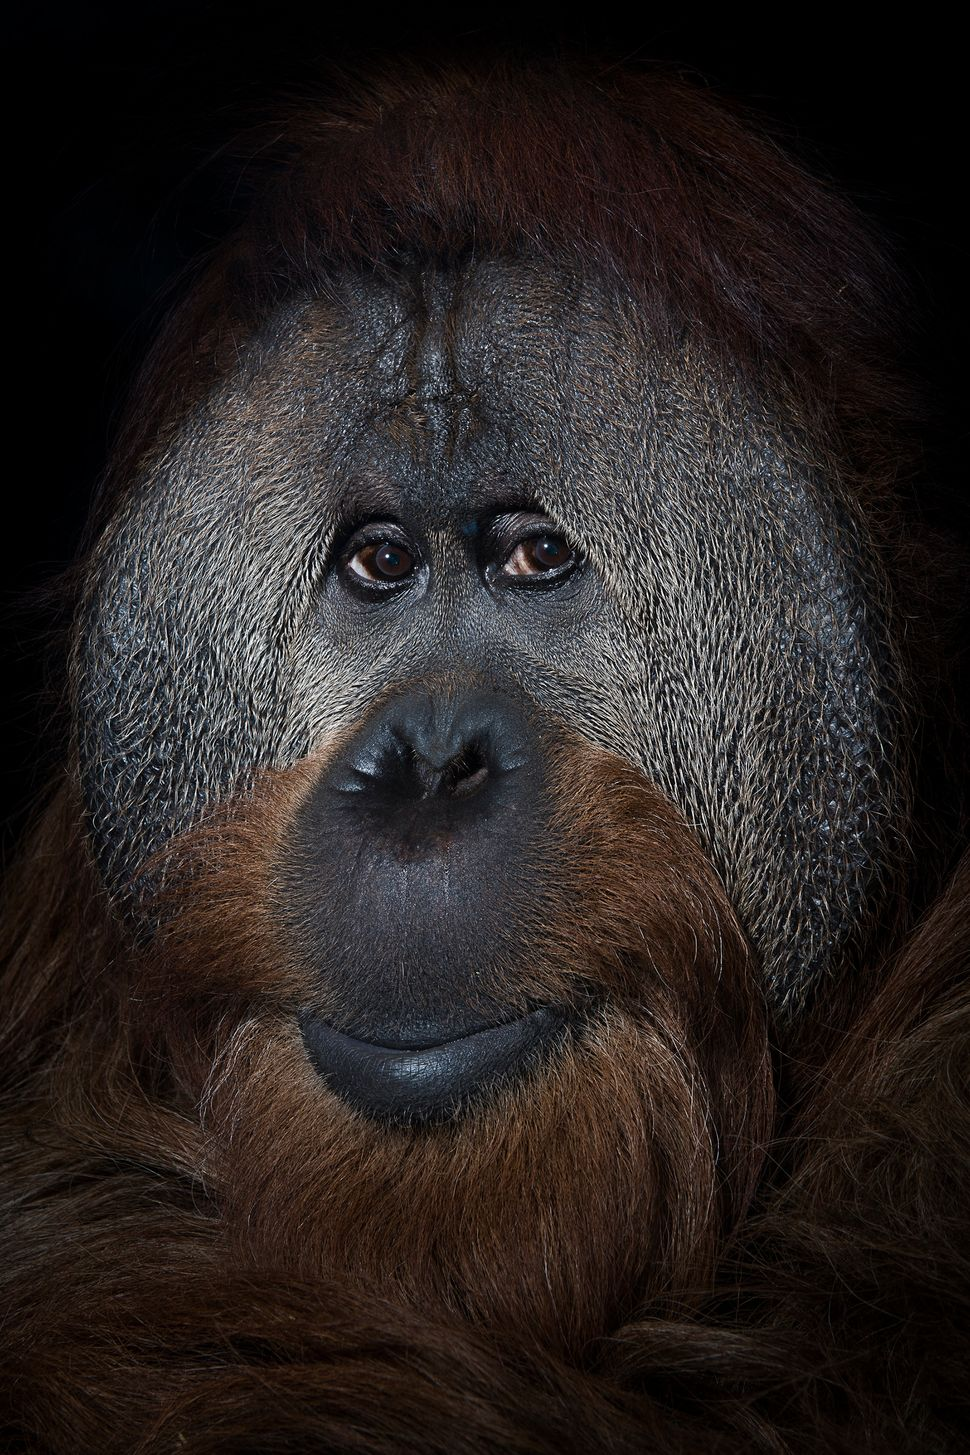 A 40-year-old orangutan named Azy at the Simon Skjodt International Orangutan Center in Indianapolis, Indiana.